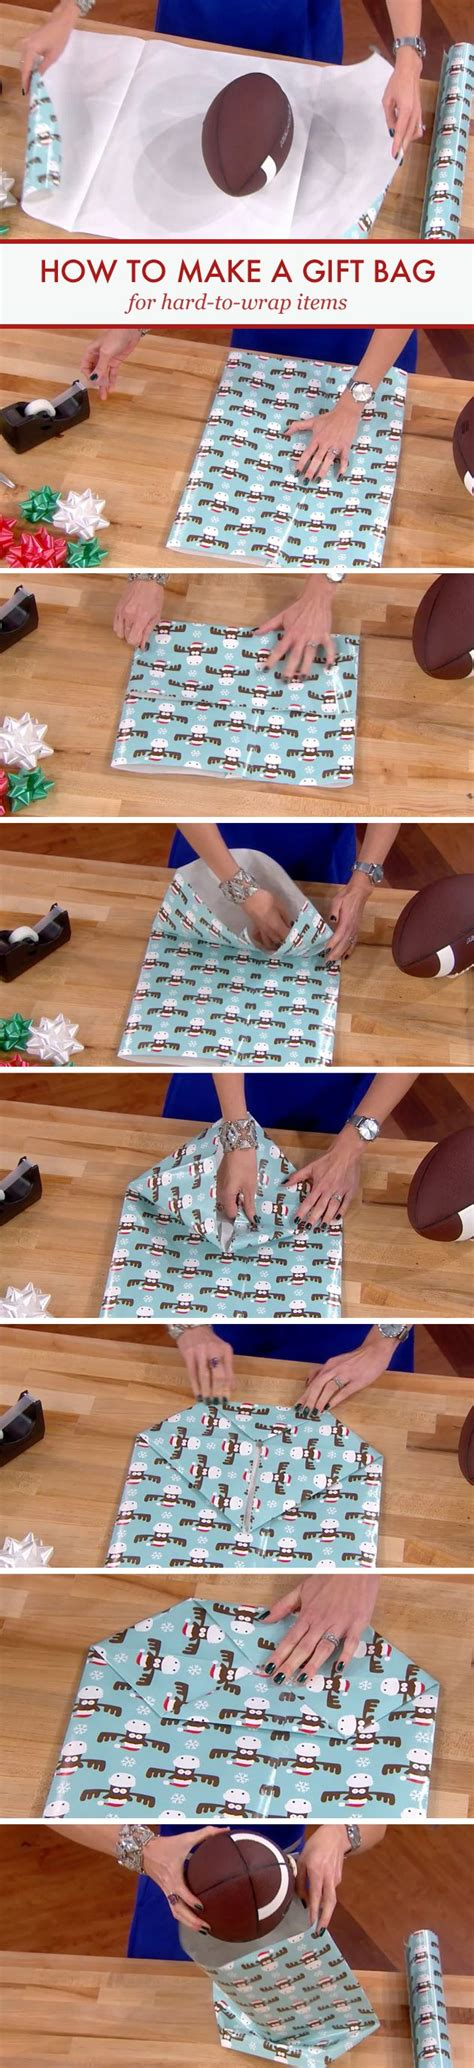 How To Make A Gift Bag From Wrapping Paper - 5 the most impressive how to wrap a gift ideas